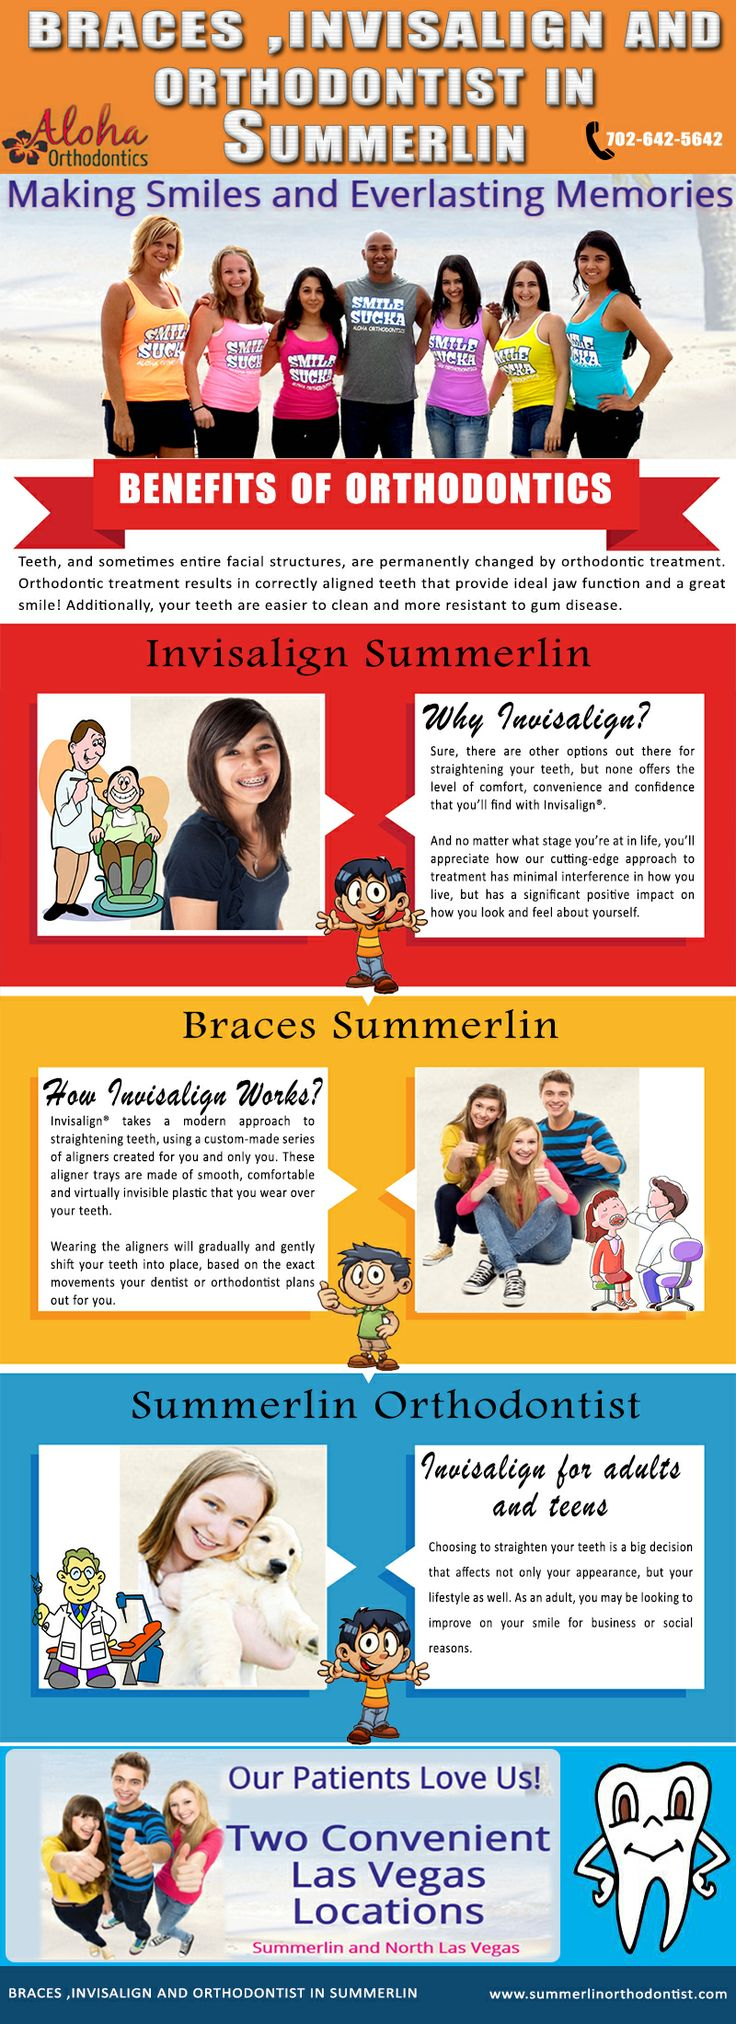 Visit our site http://summerlinorthodontist.com for more information on Invisalign Summerlin.Words malocclusion means that there is a trouble with the way you bite adverse things. Orthodontic braces are made to obtain the bite back in the best position so you could not just really feel better by a great deal better too. Braces Summerlin are devices that it used to remedy the dental troubles with the positioning of the teeth and jaws.